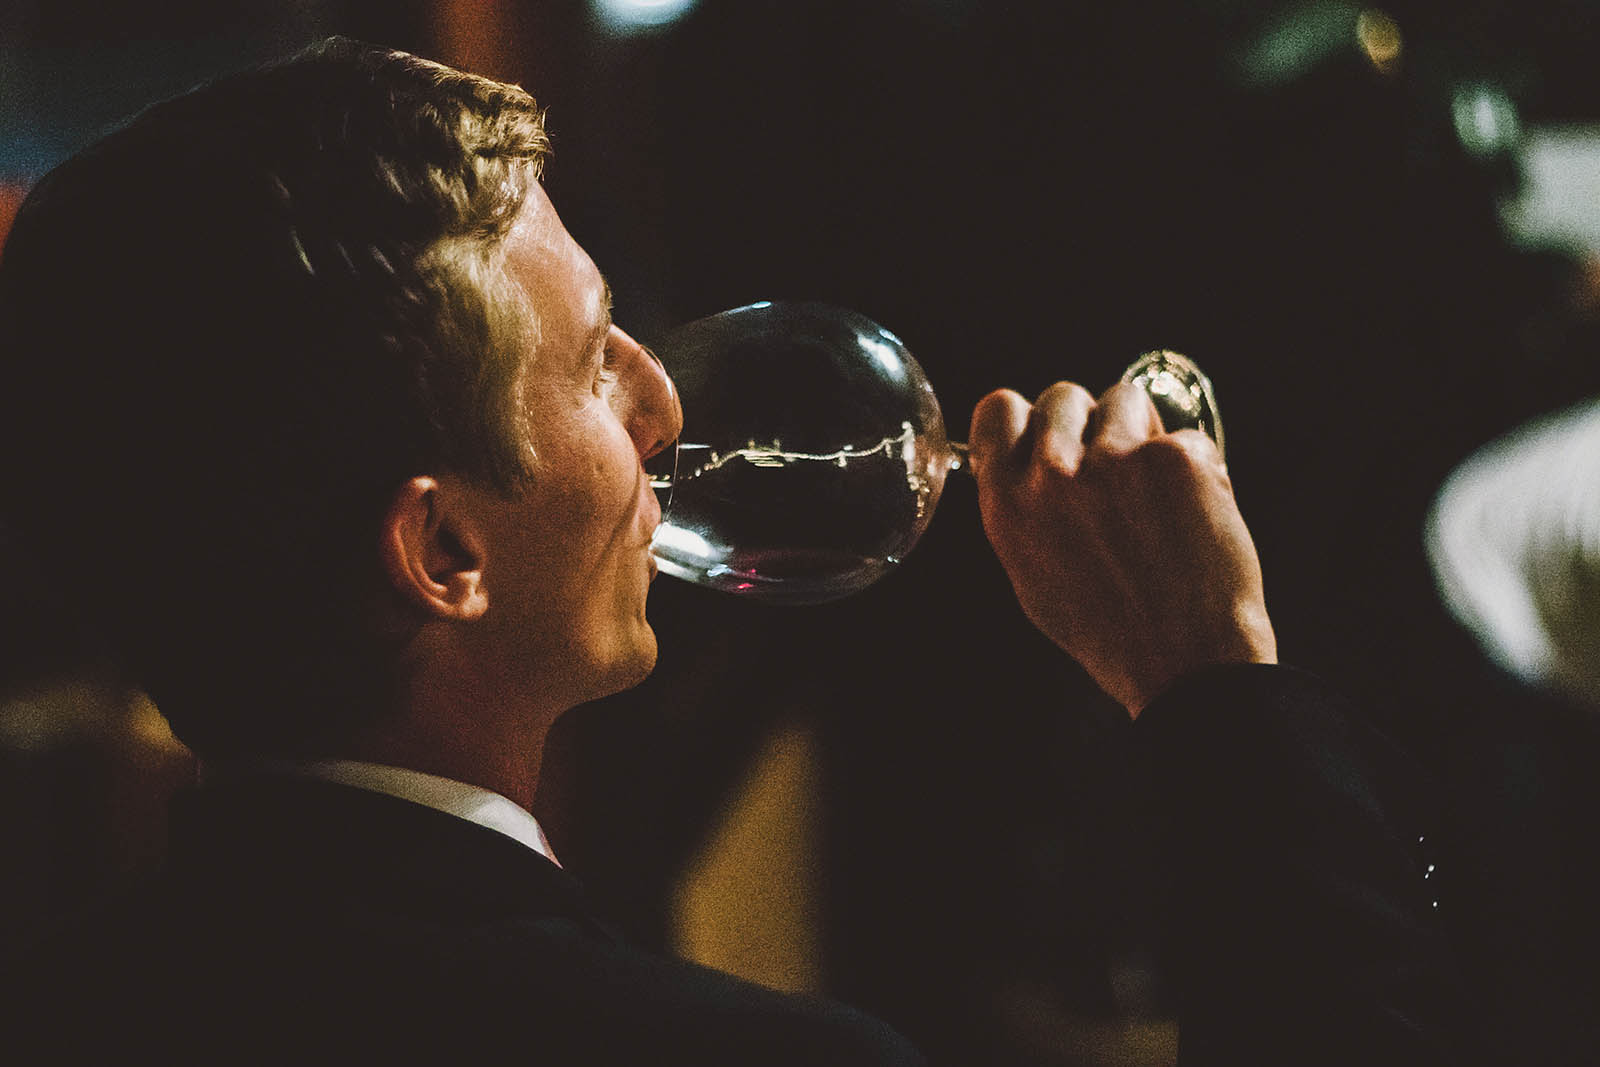 Groom drinking wine at a Clay Pigeon Winery wedding reception